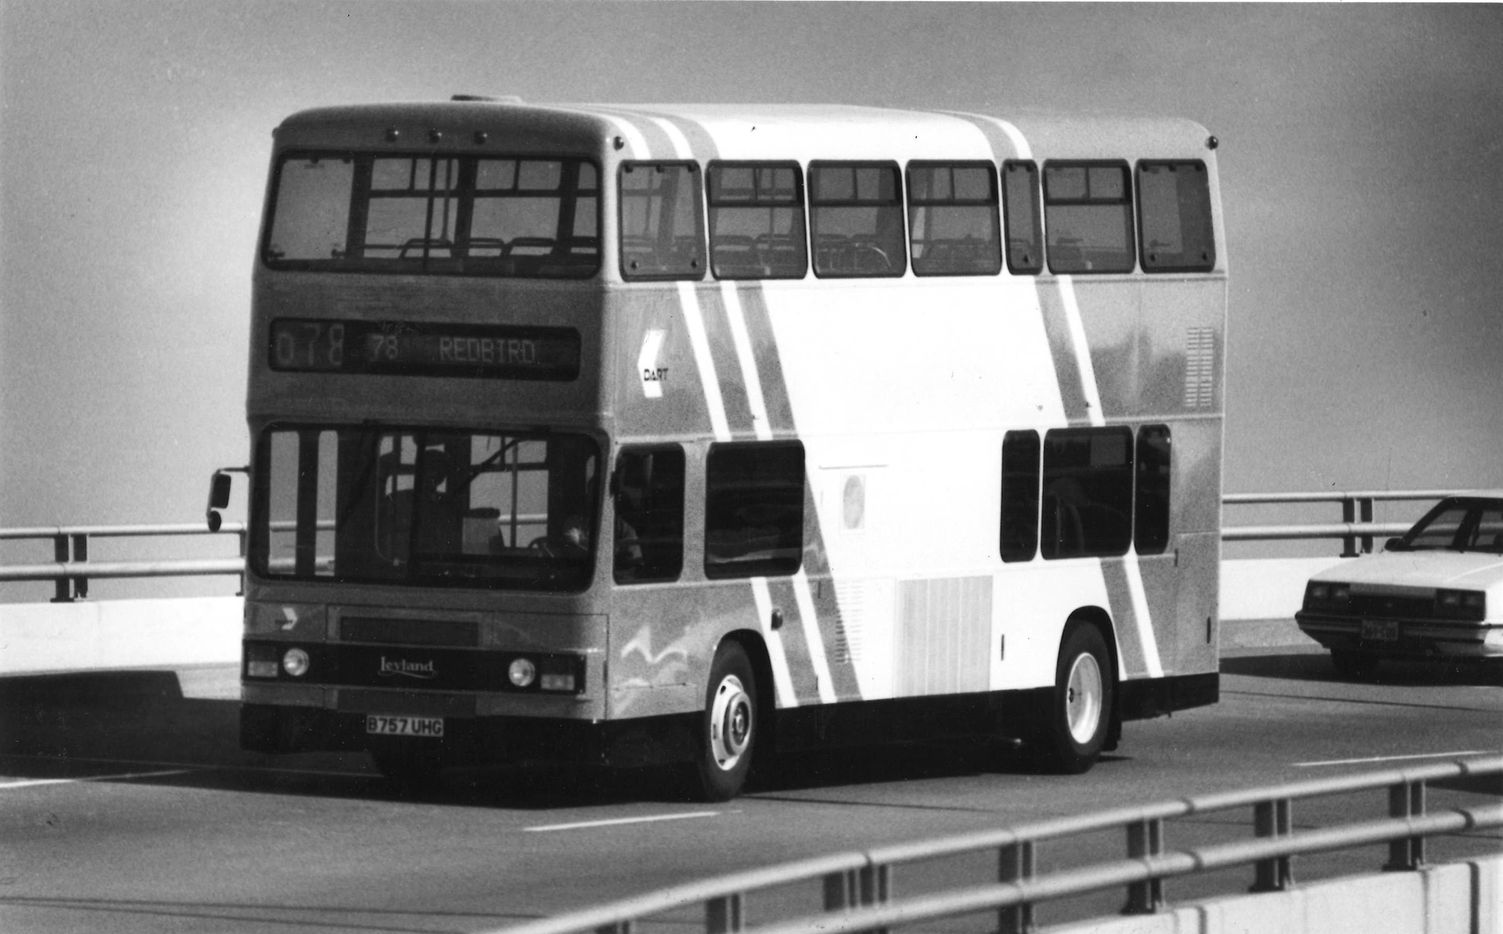 A double-decker bus was being tested by DART for possible usage in the DART system in 1985.